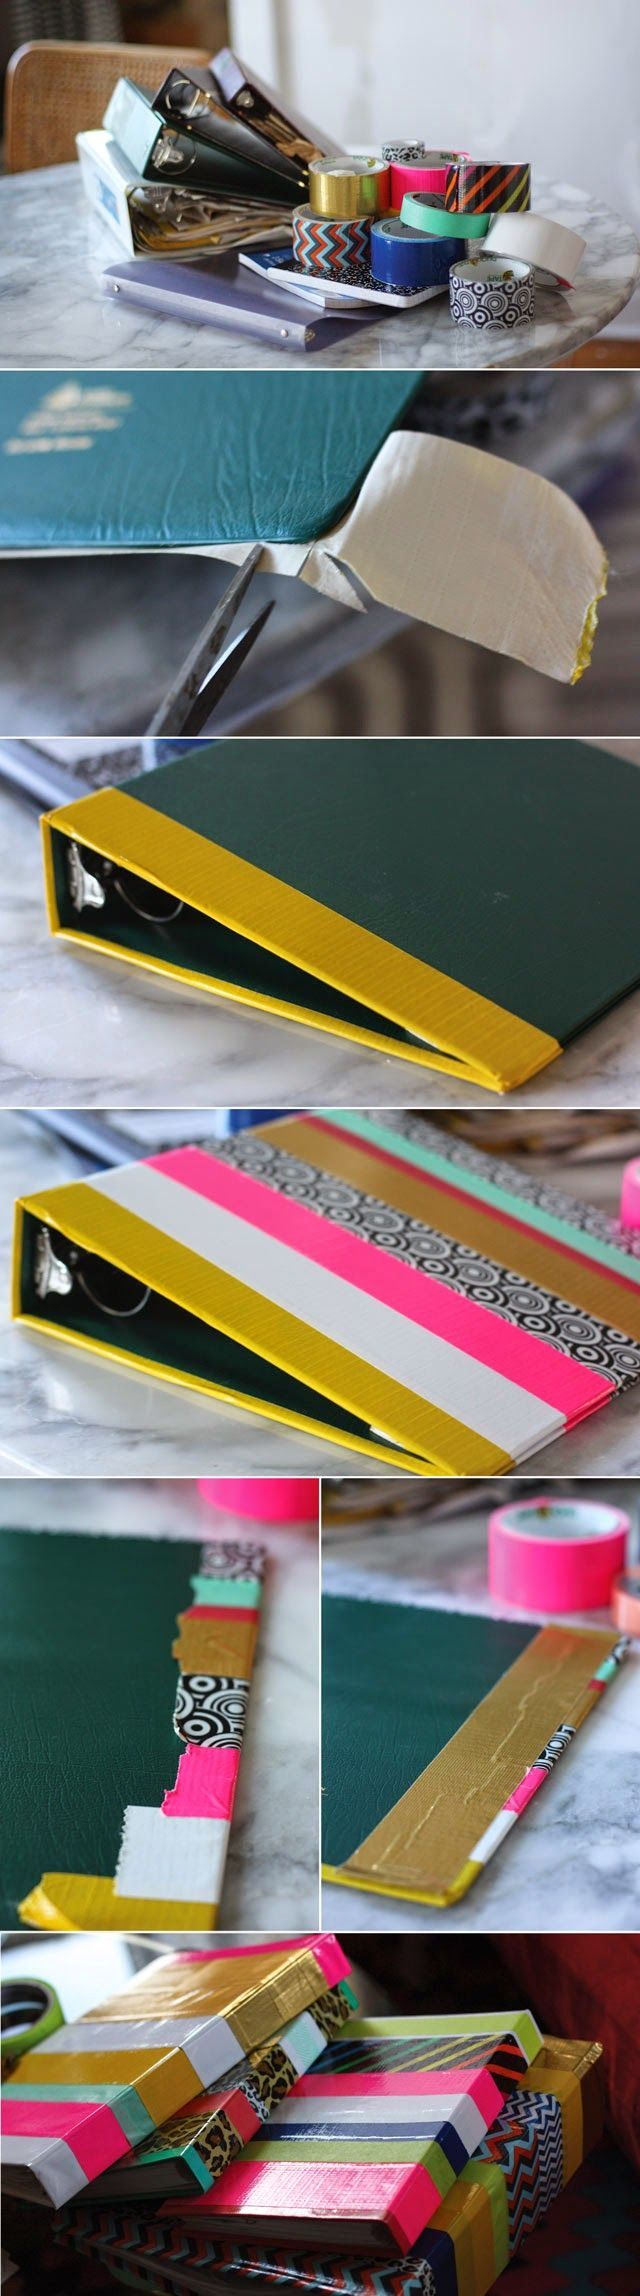 School Supply Makeover Using Washi Tape